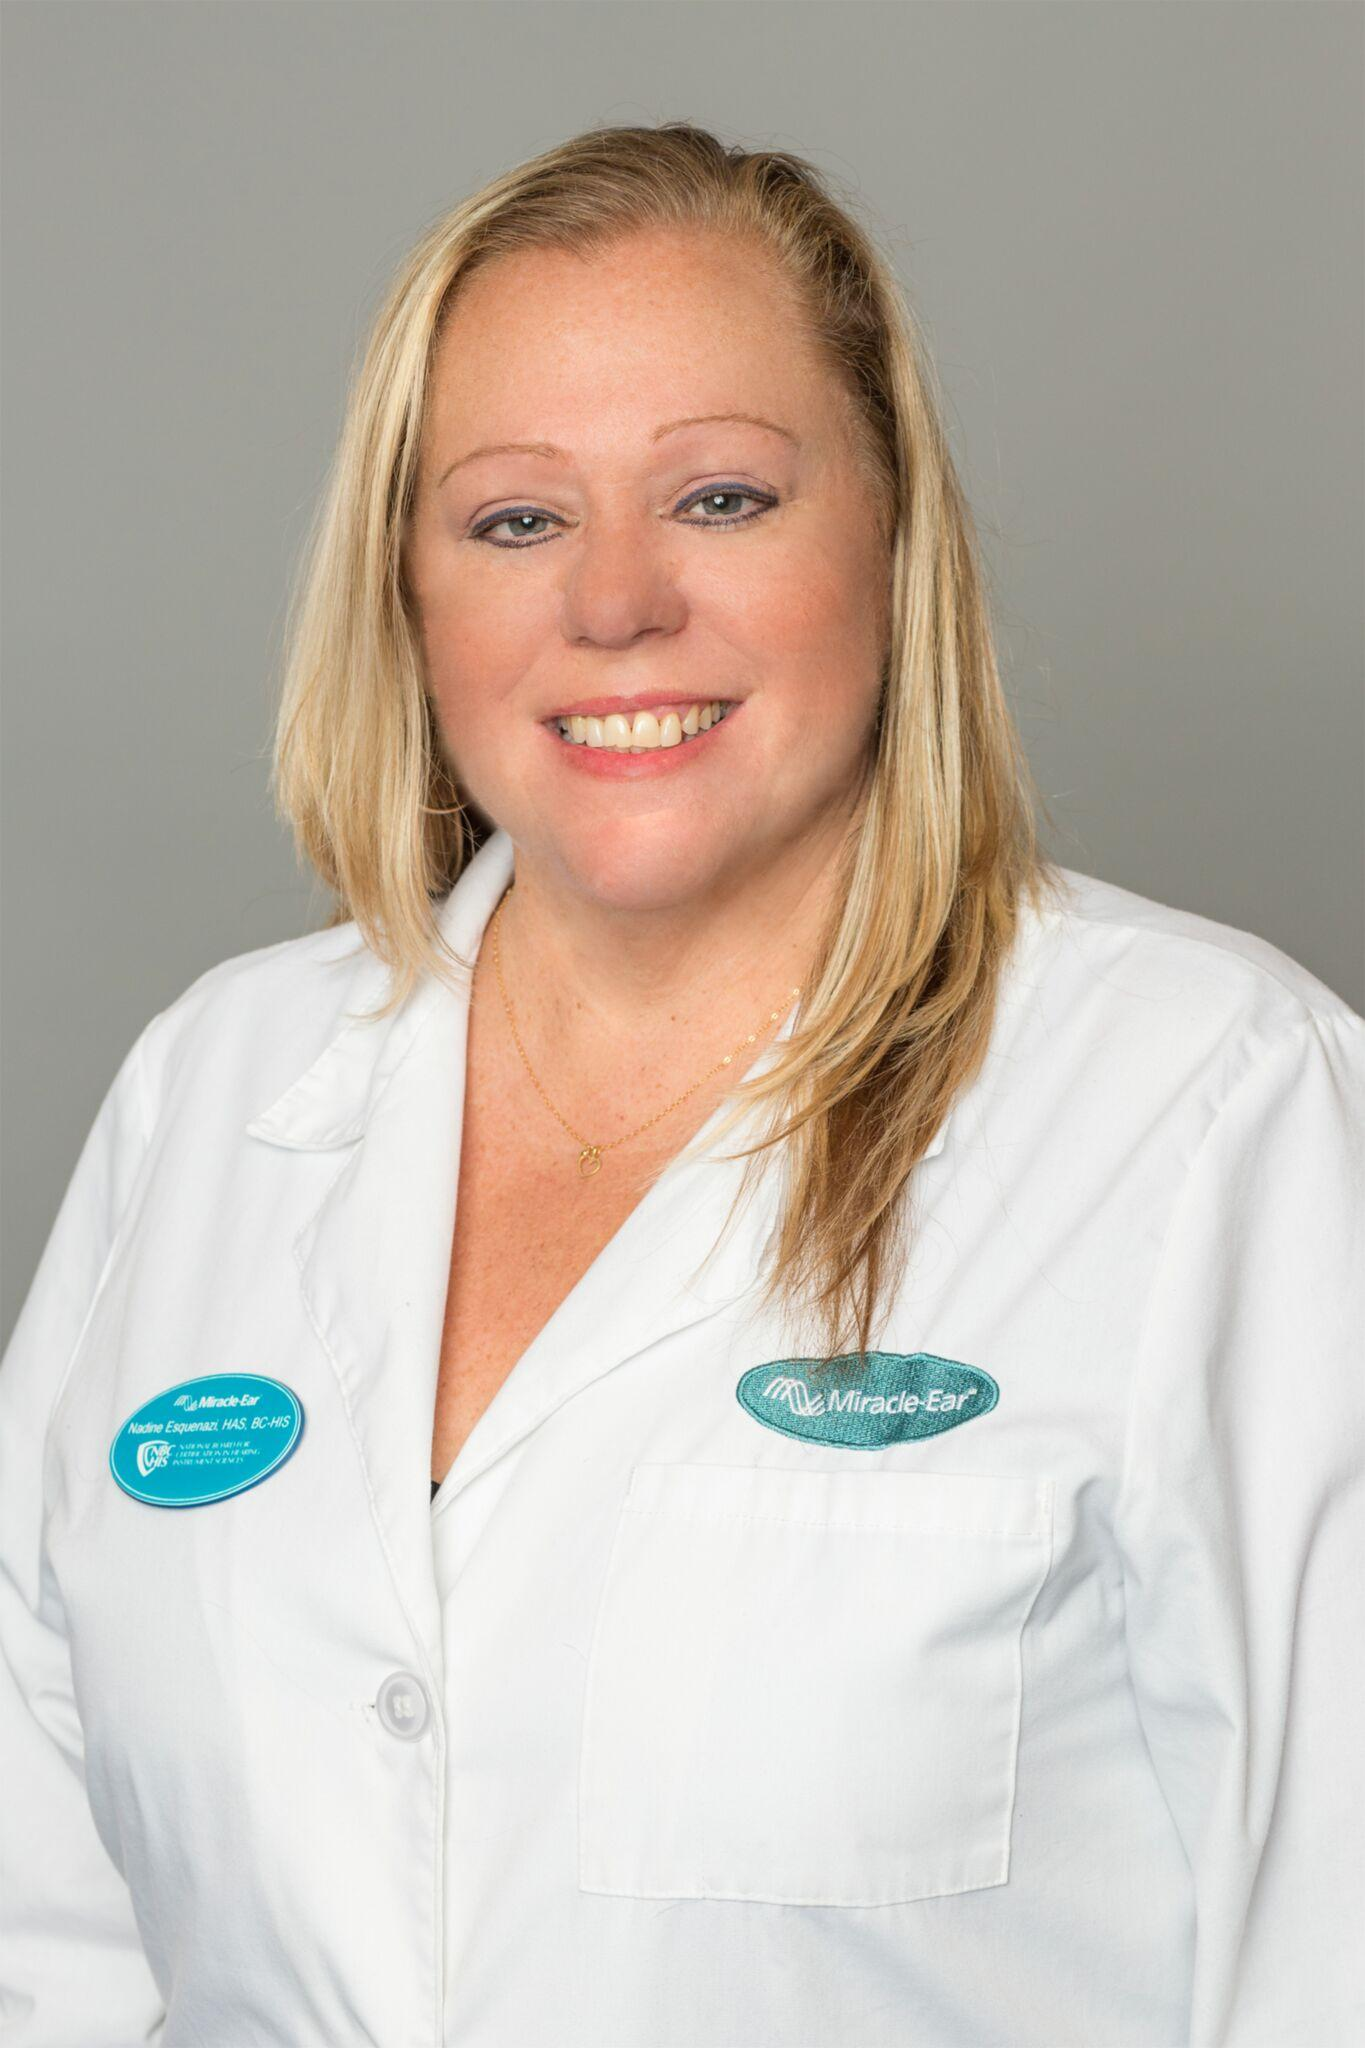 Profile Photo of Nadine - Board Certified in Hearing Instrument Sciences